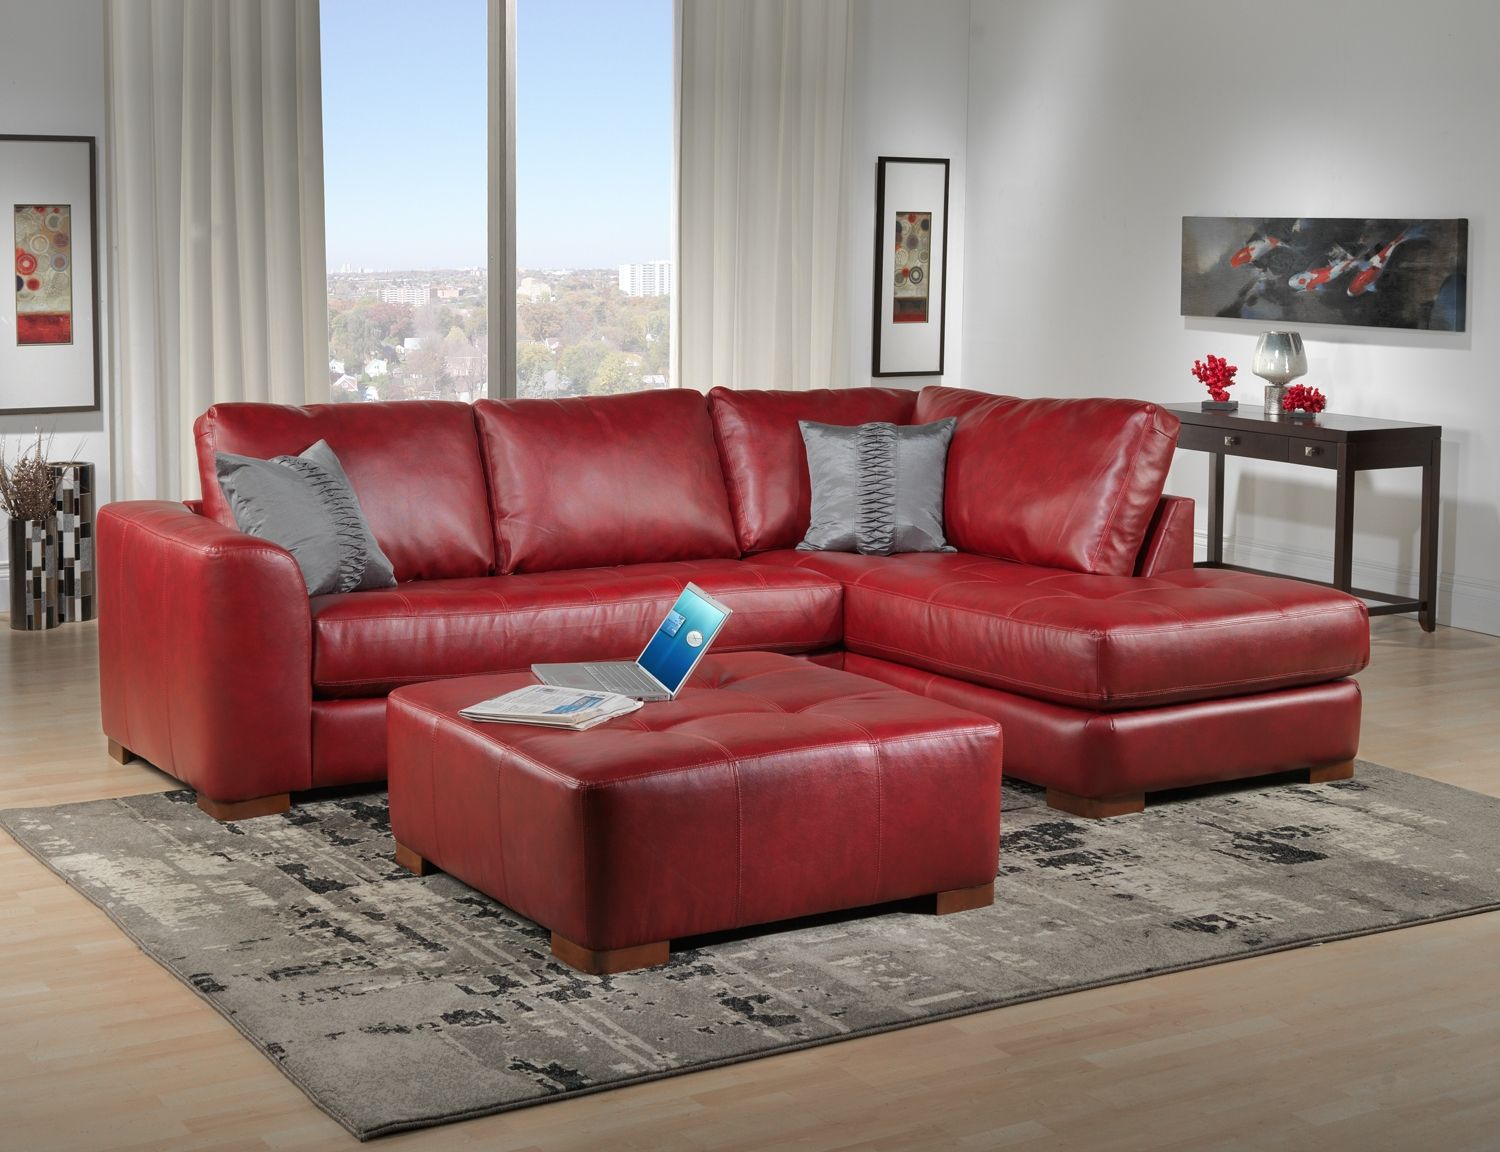 Living Room Furniture The Naples IV Collection 2 Pc